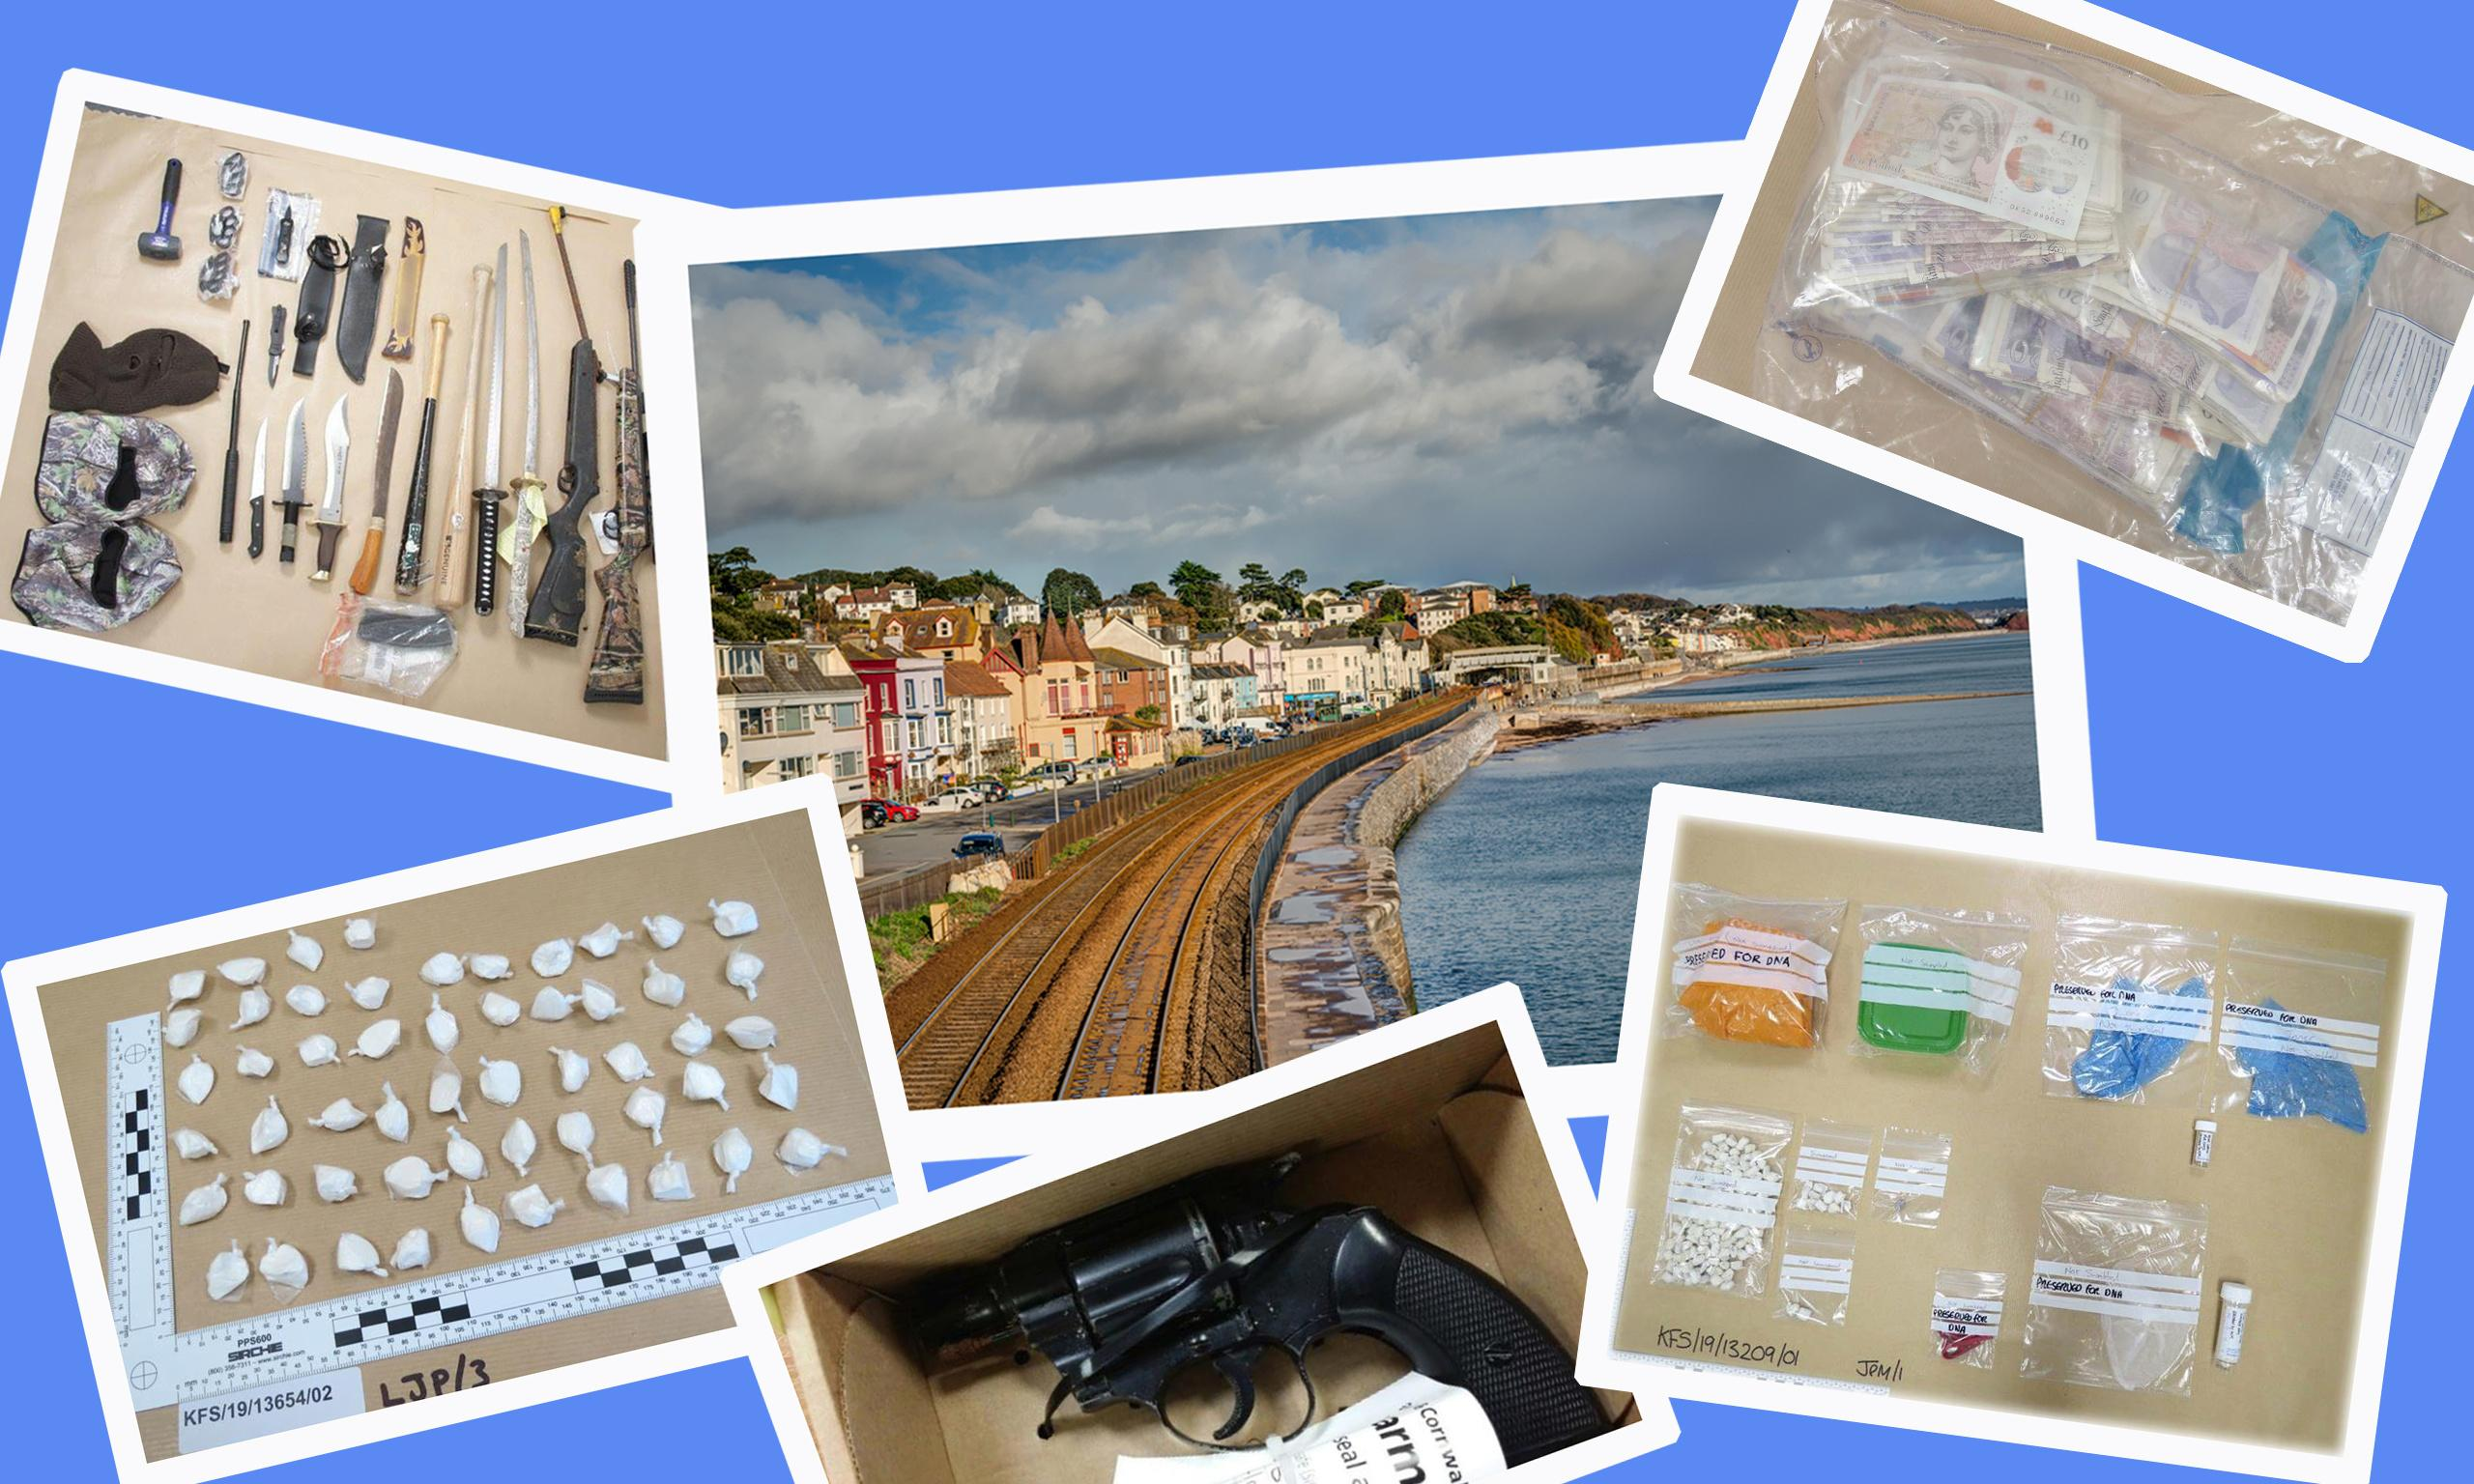 Hell-on-Sea: how a drugs gang took over a sleepy Devon town